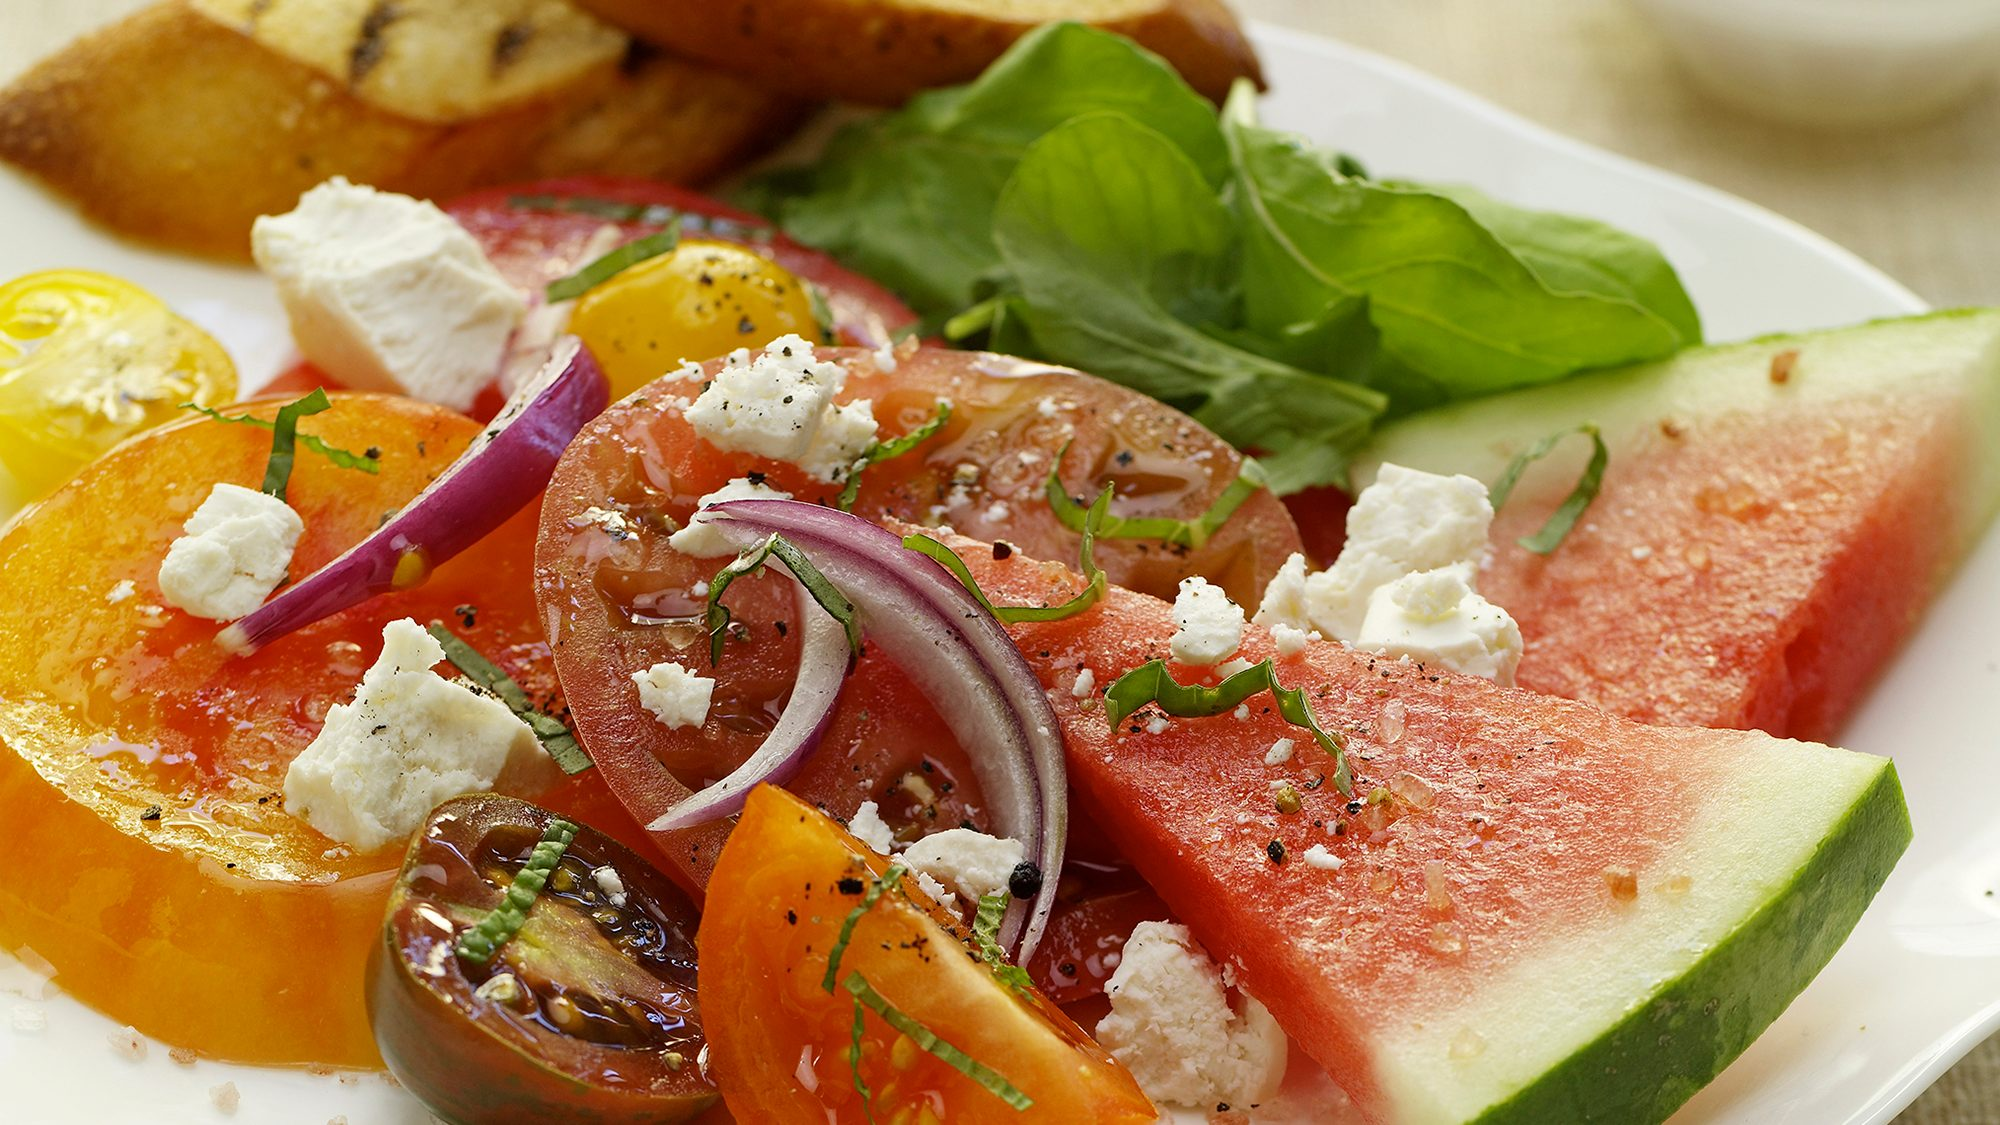 heirloom-tomato-and-watermelon-salad-with-ricotta-salata.jpg